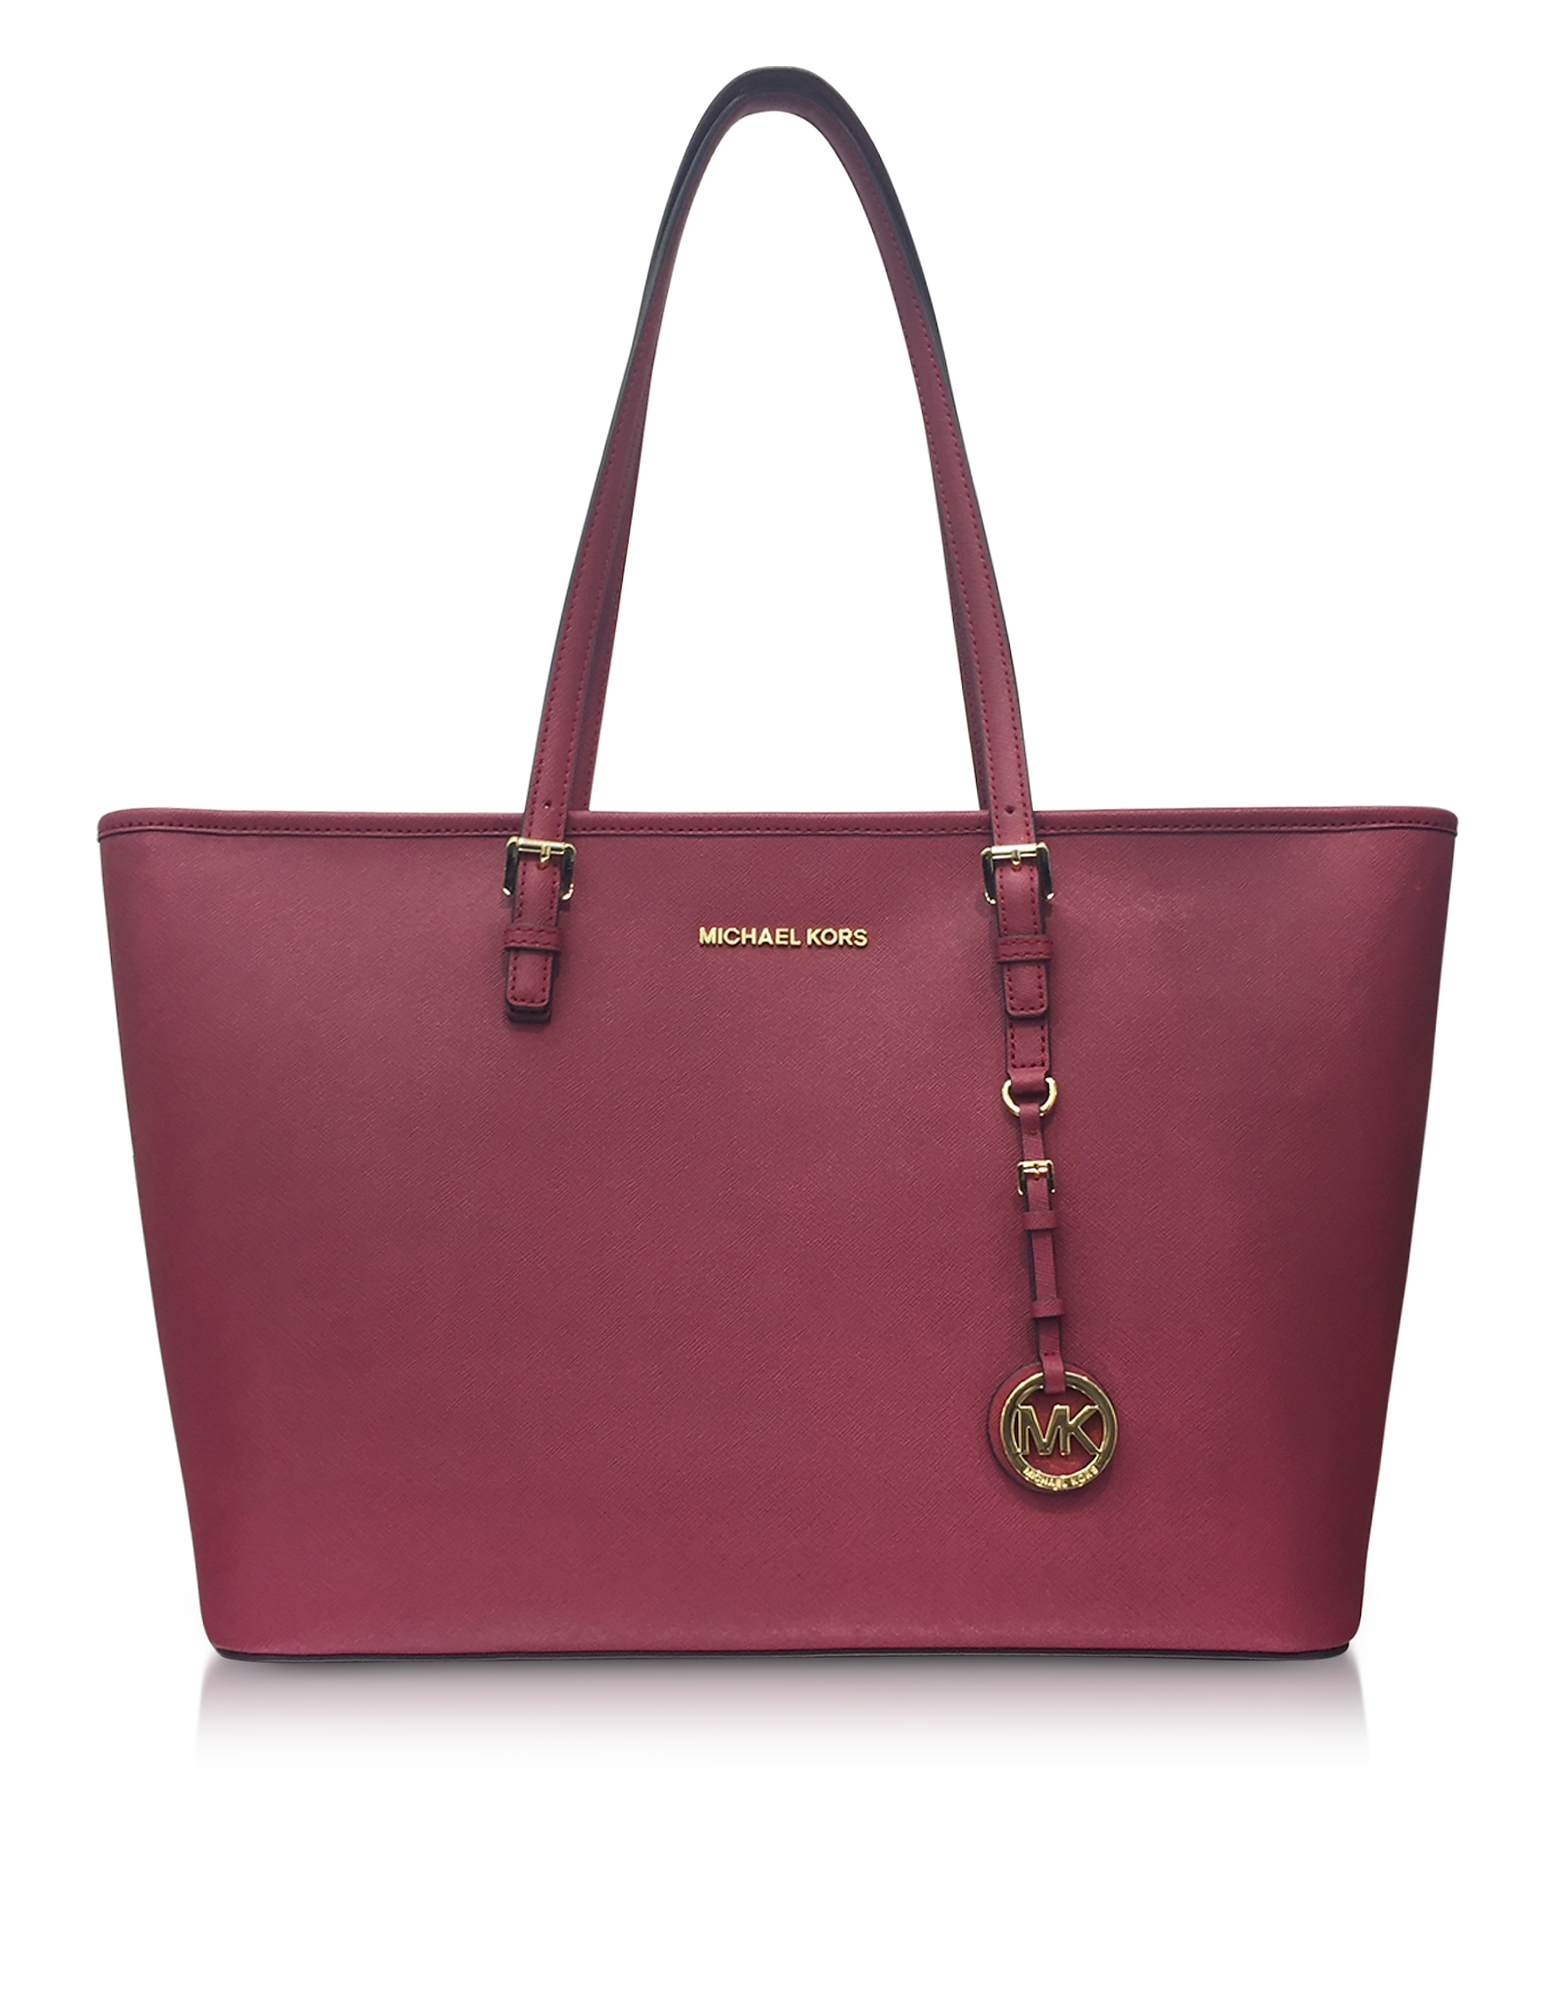 Michael Kors Handbags, Jet Set Travel Medium Mulberry Saffiano Leather Top-Zip Tote